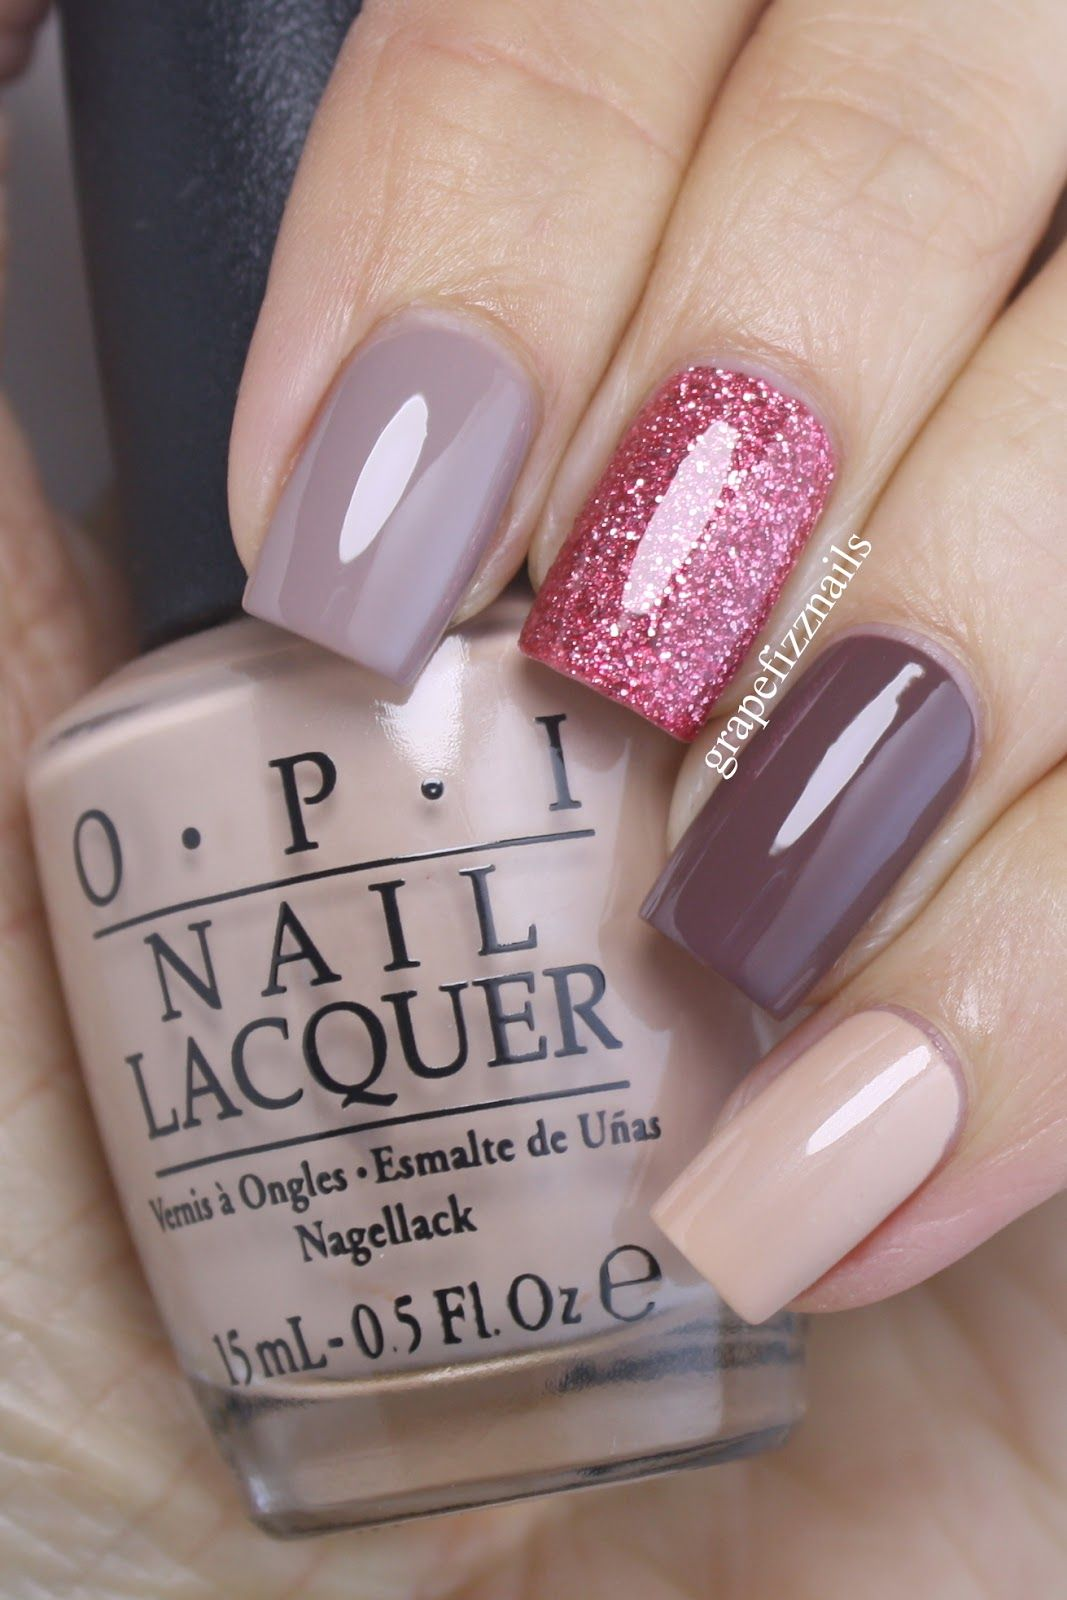 100 Most Popular Spring Nail Colors of 2018 | Bellisima ...